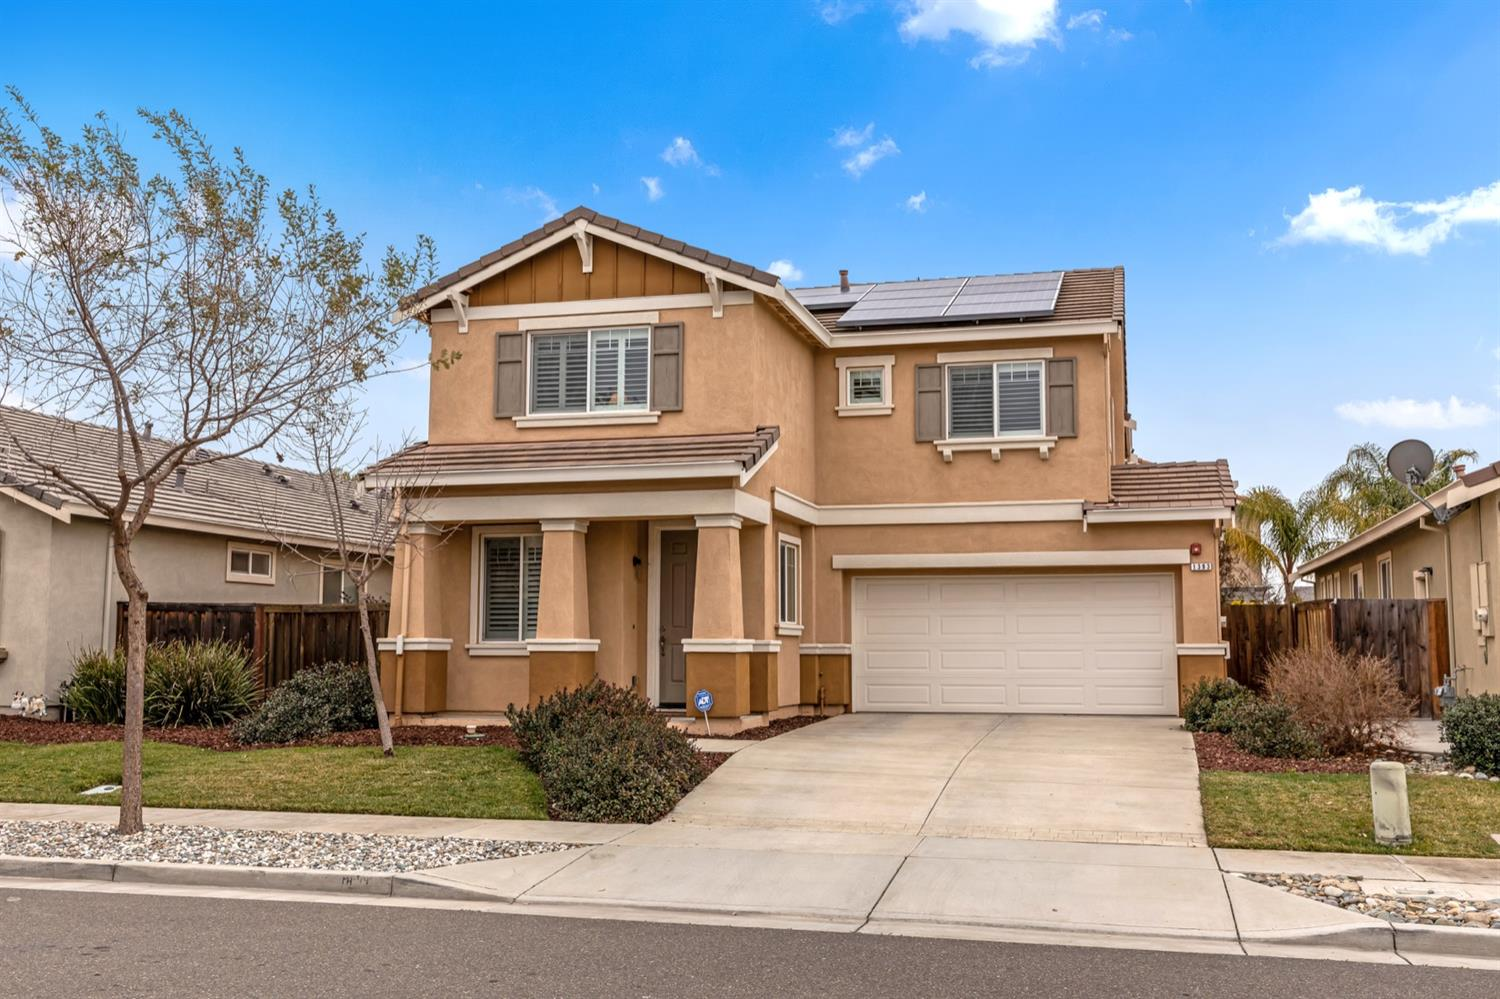 Photo of 1393 Highland Drive, West Sacramento, CA 95691